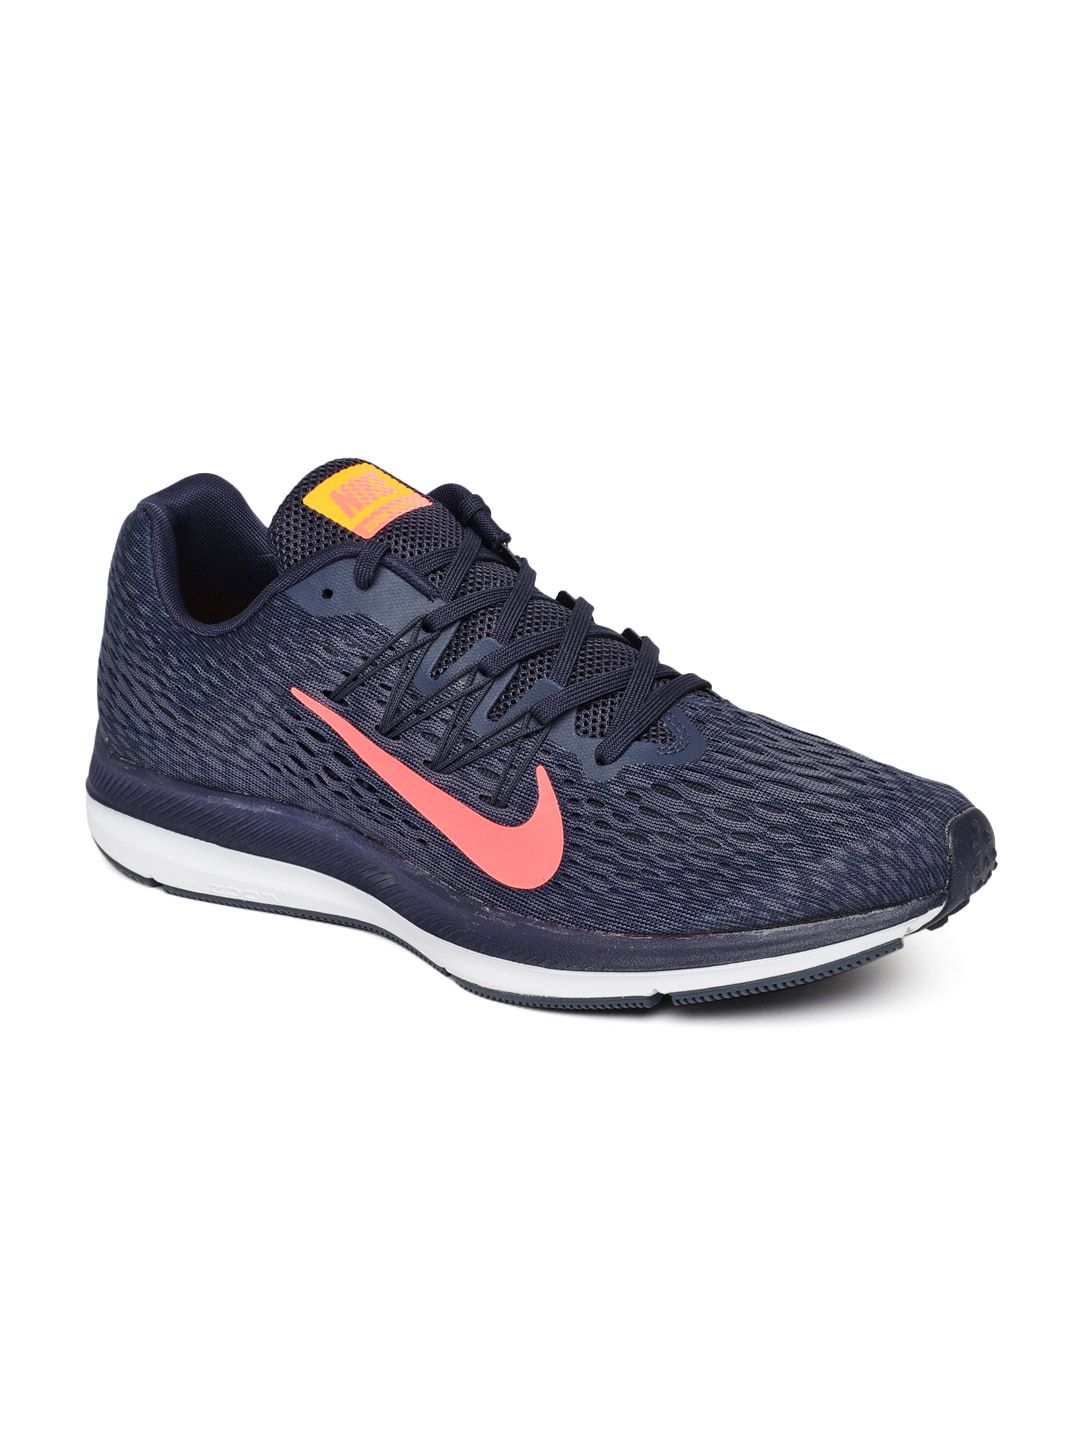 93d6d3edf3e33 Nike Men Running Sports Shoes - Buy Nike Men Running Sports Shoes online in  India